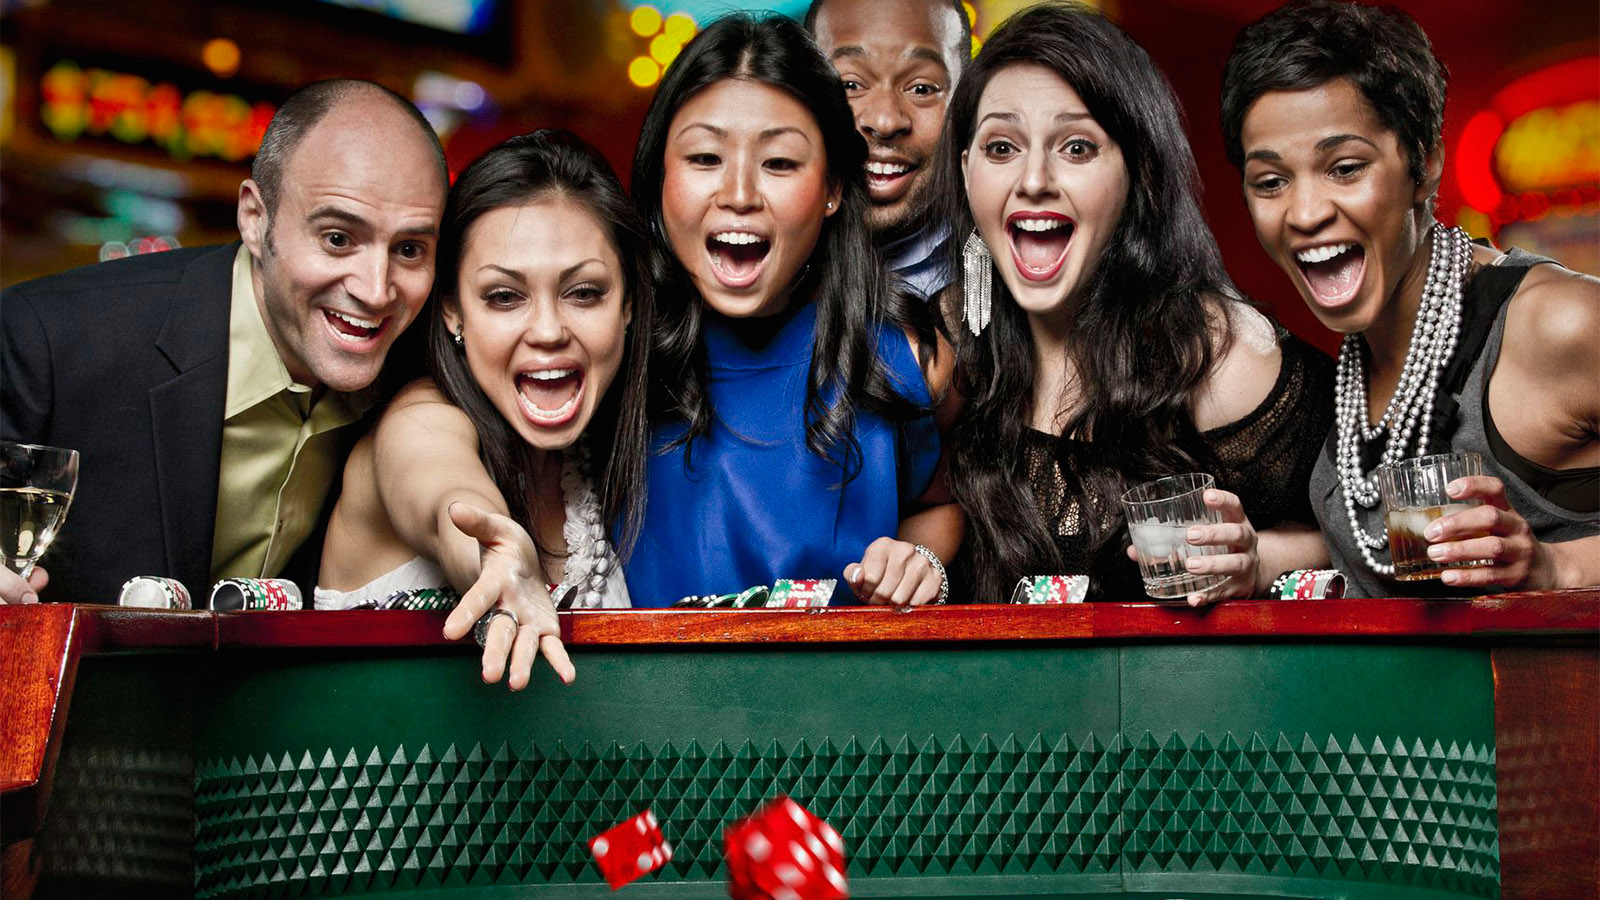 Casino Images - A2Z PARTY MEDIA